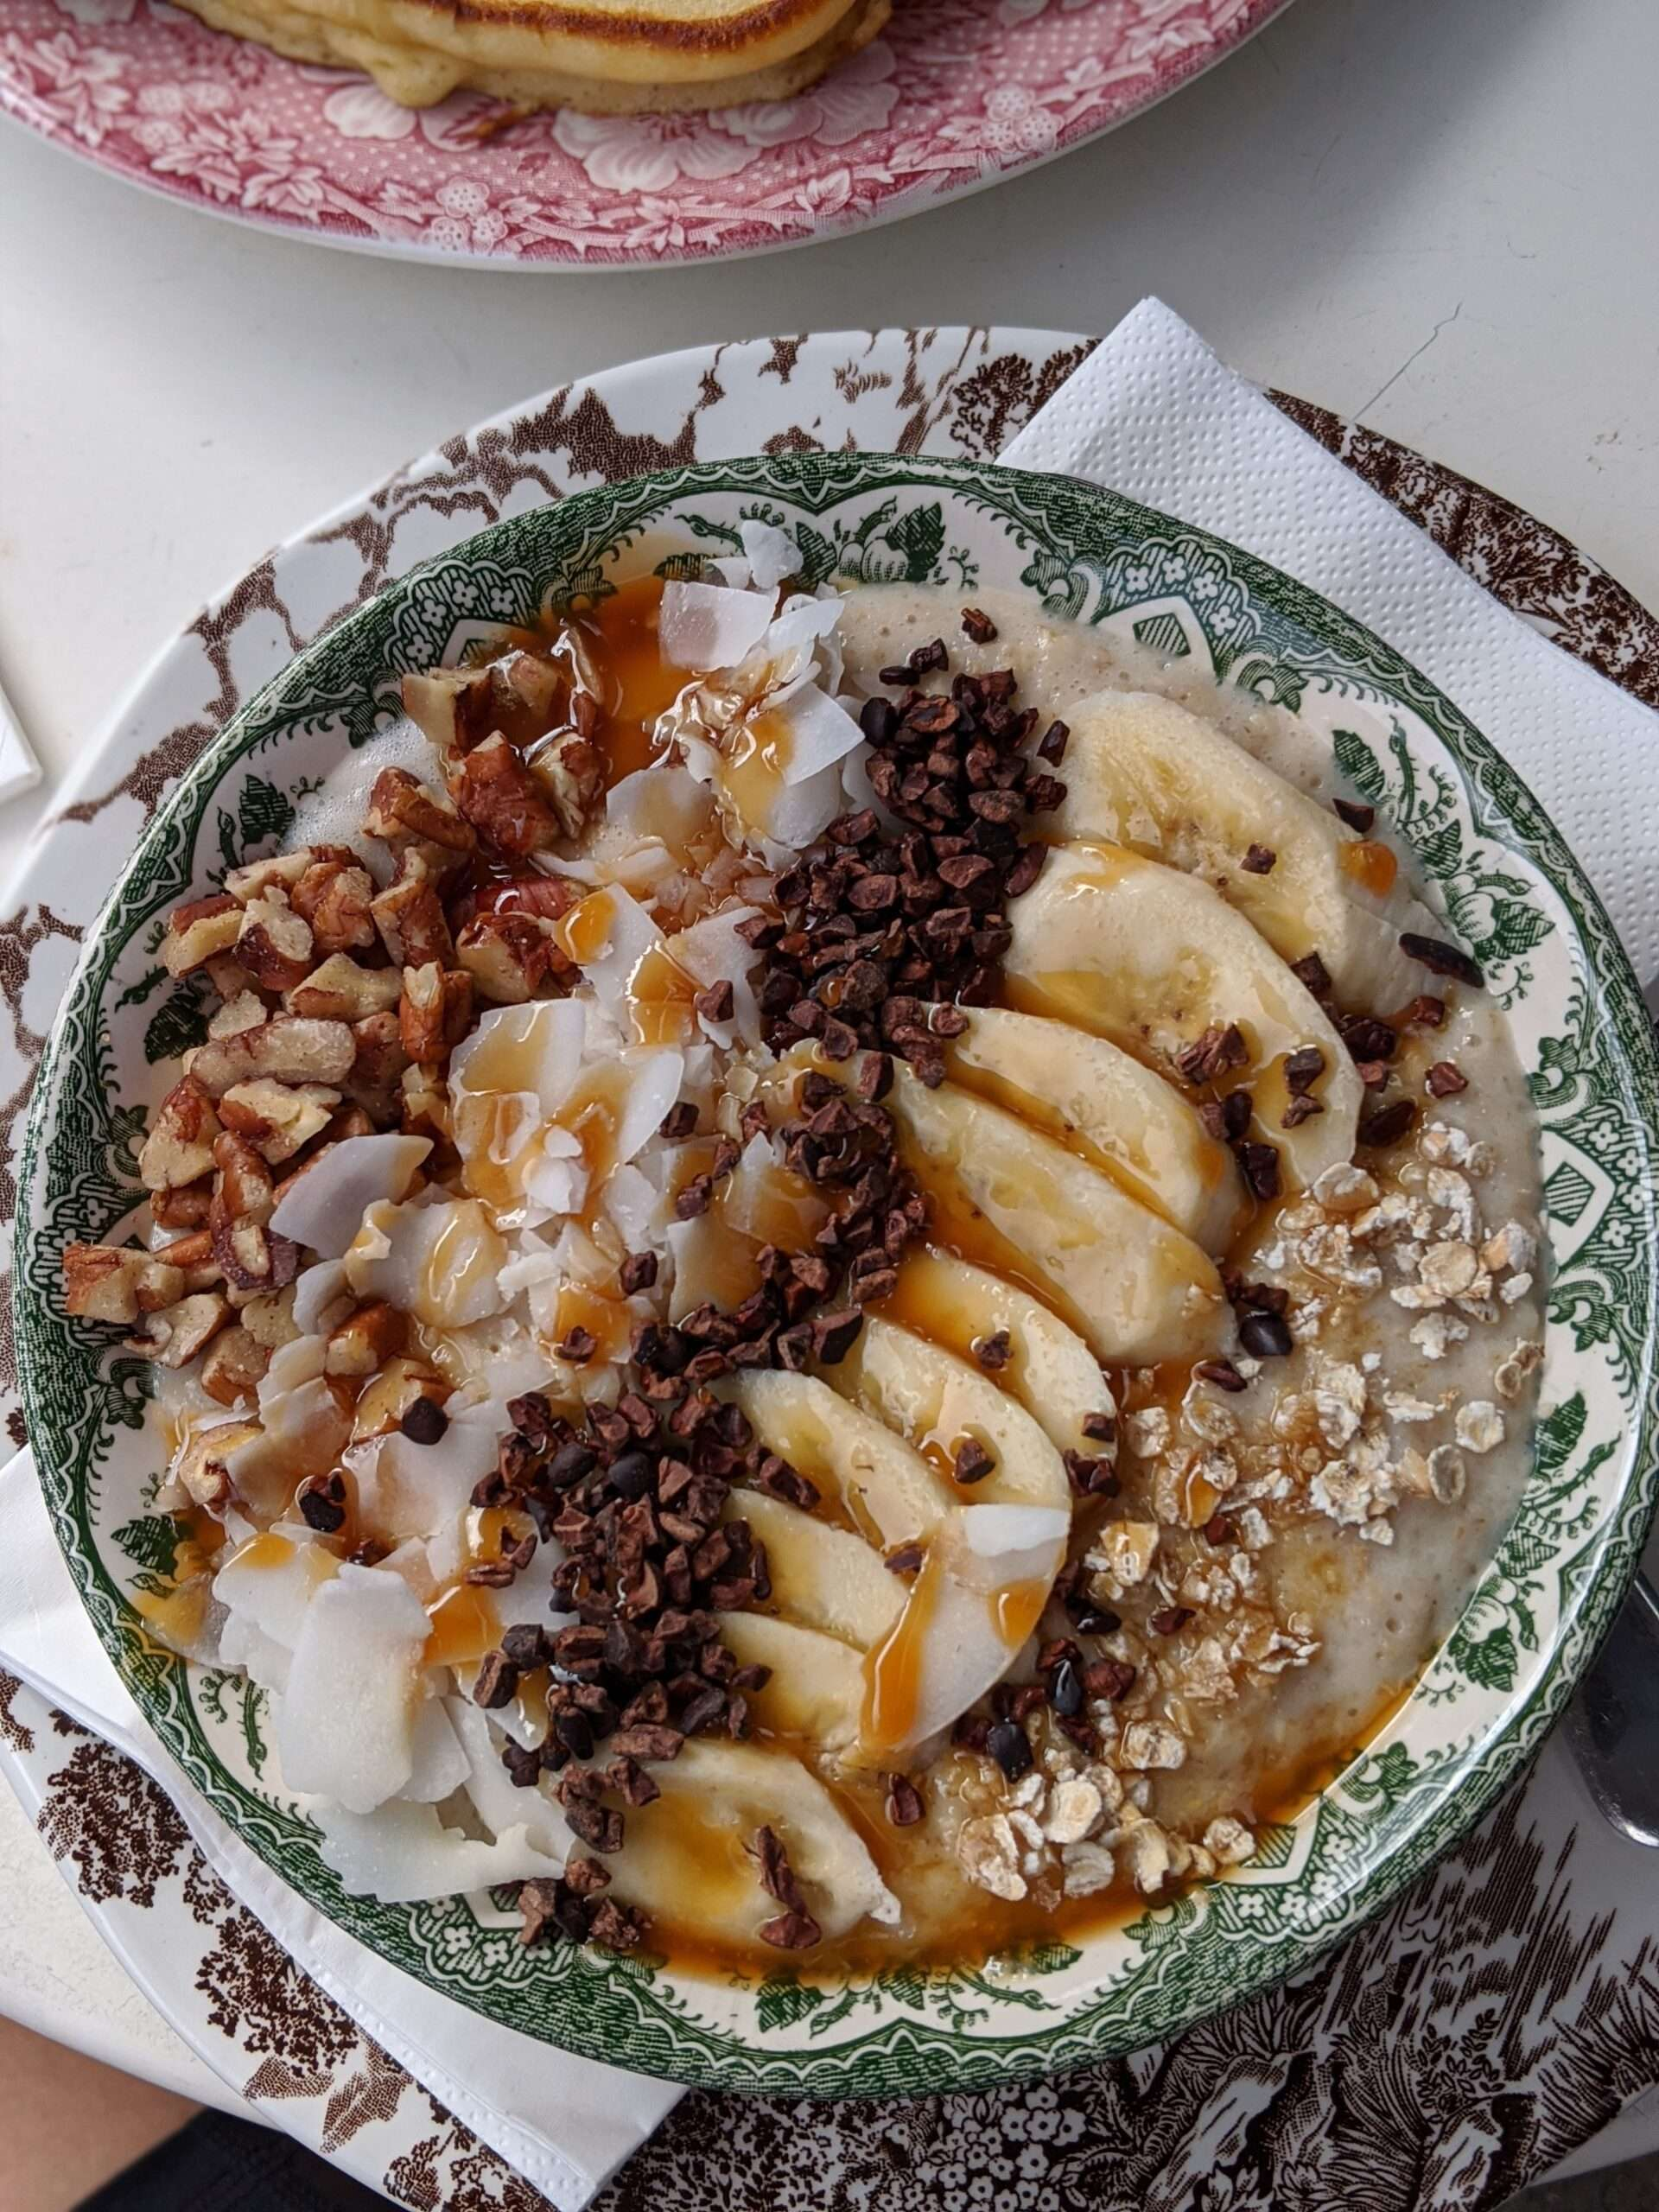 oatmeal topped with sliced banana, cacao nibs, shredded coconut and chopped nuts presented in a green and white painted bowl